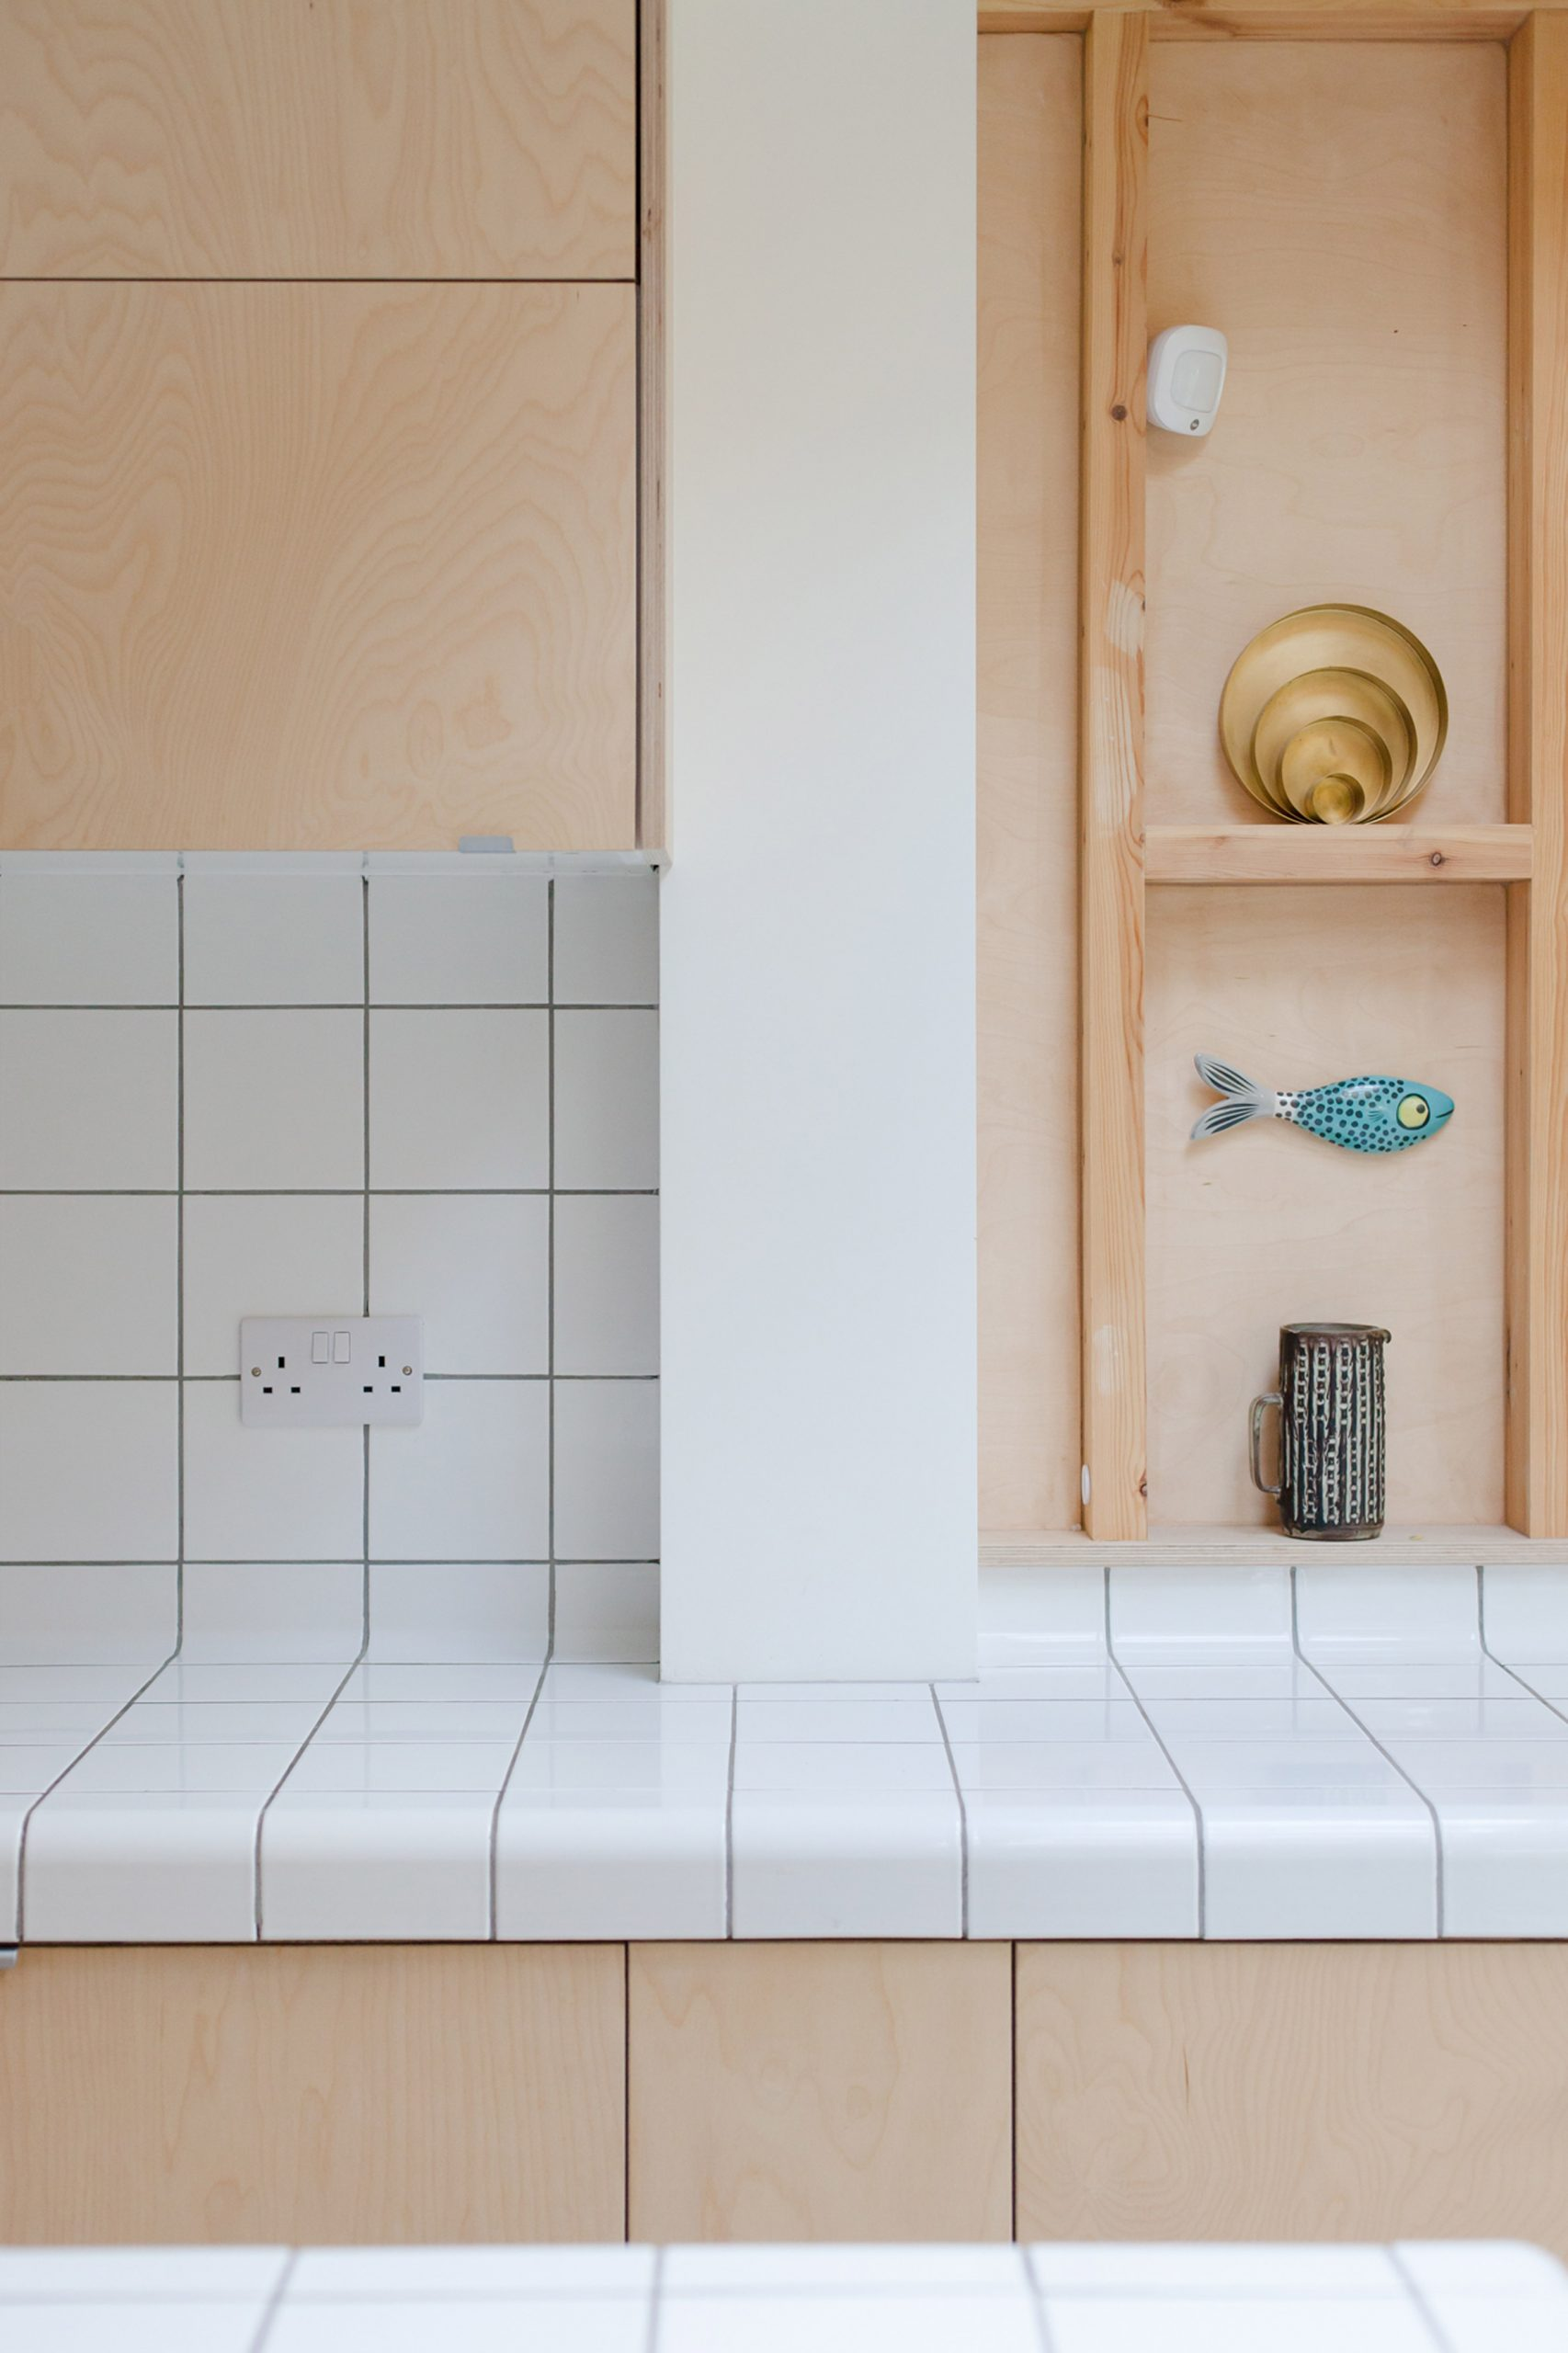 A wooden kitchen with tiled worktops